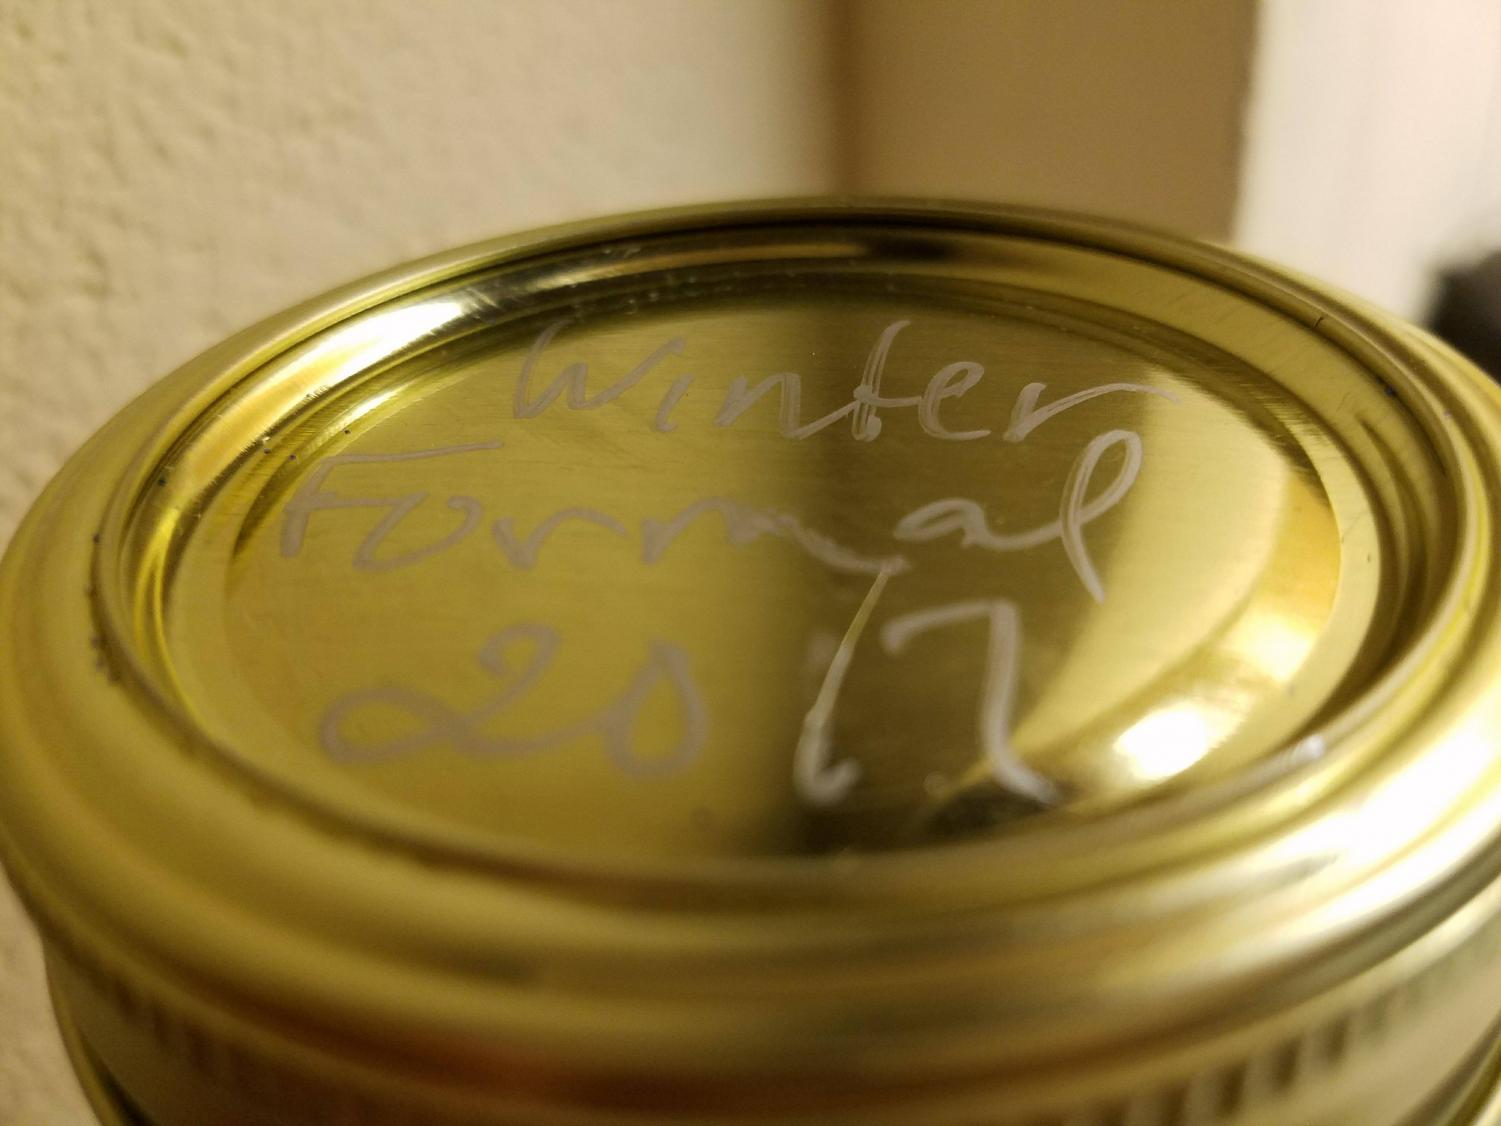 Students took snow globes back to the dorms as winter formal souvenirs.